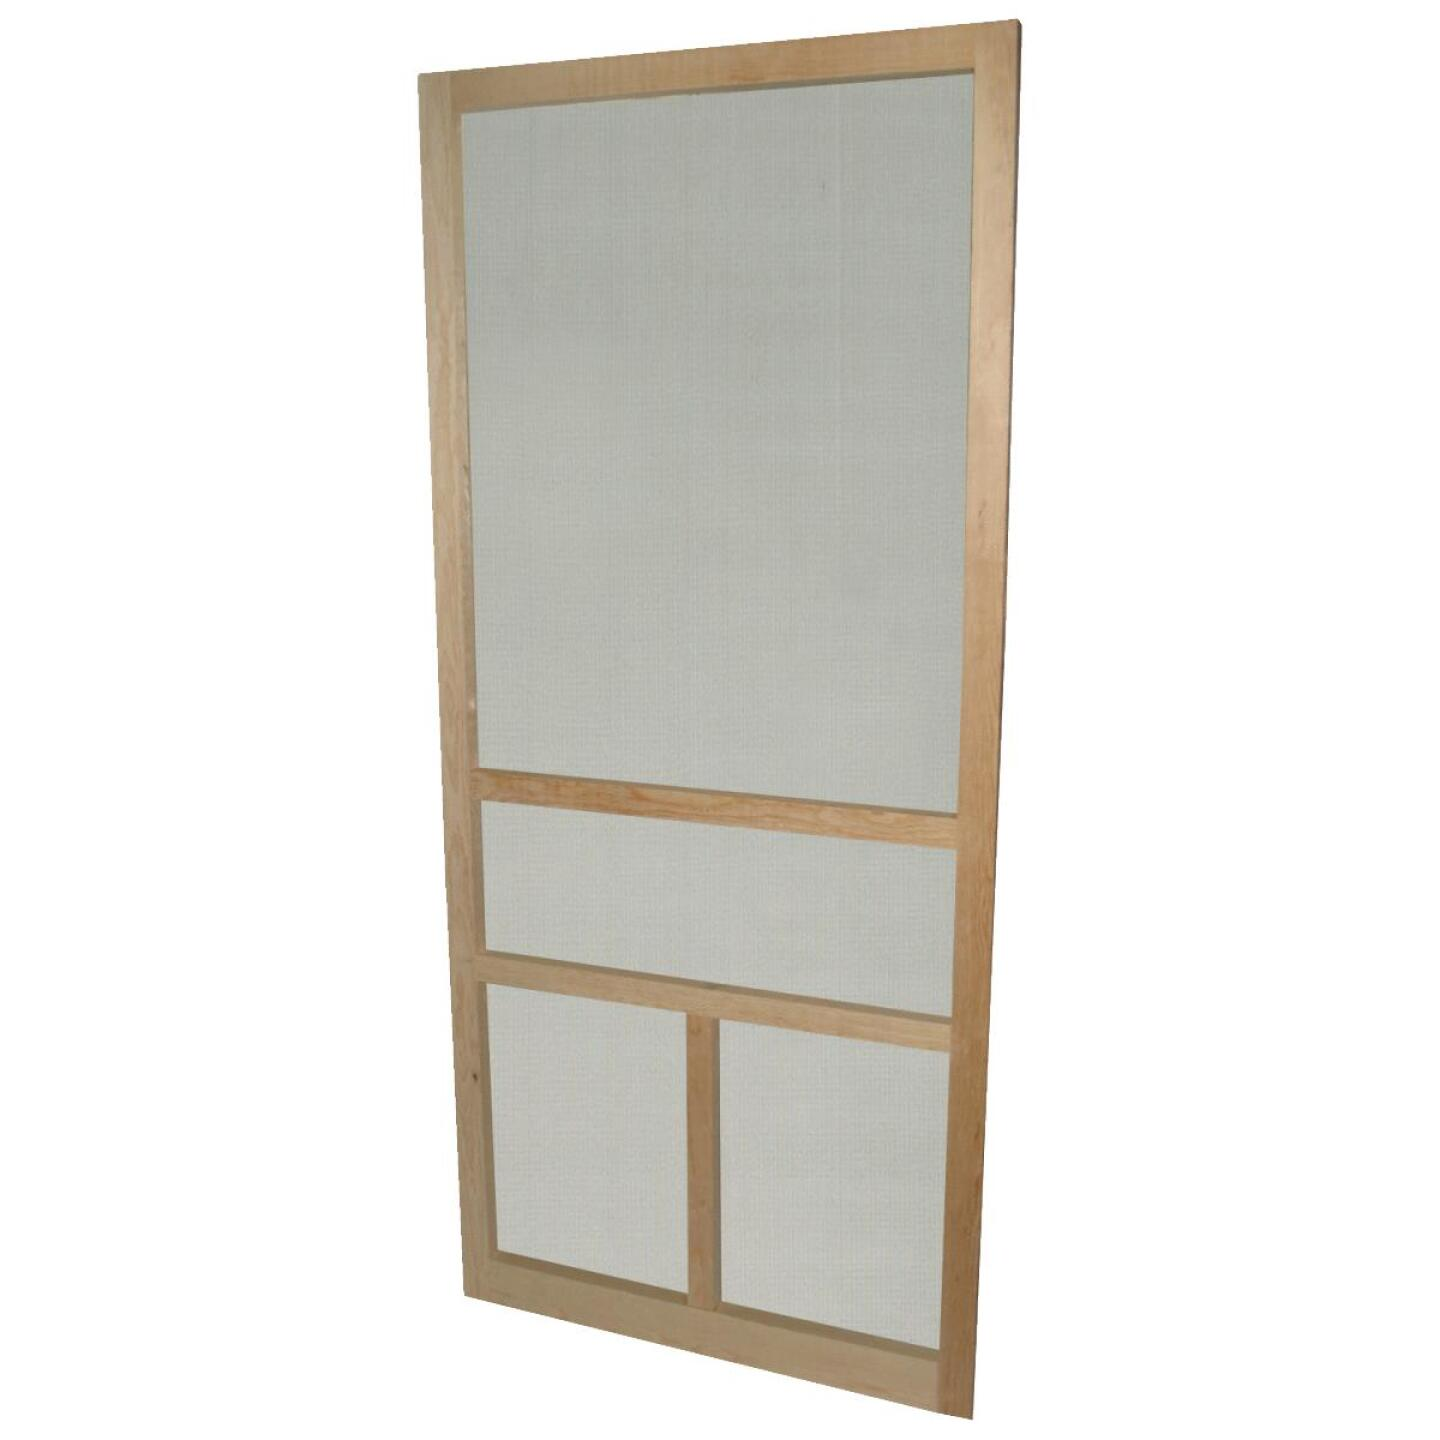 Snavely 32 In. W. x 80 In. H. x 1-1/8 In. Thick Natural Solid Pine Wood T-Bar Screen Door Image 1